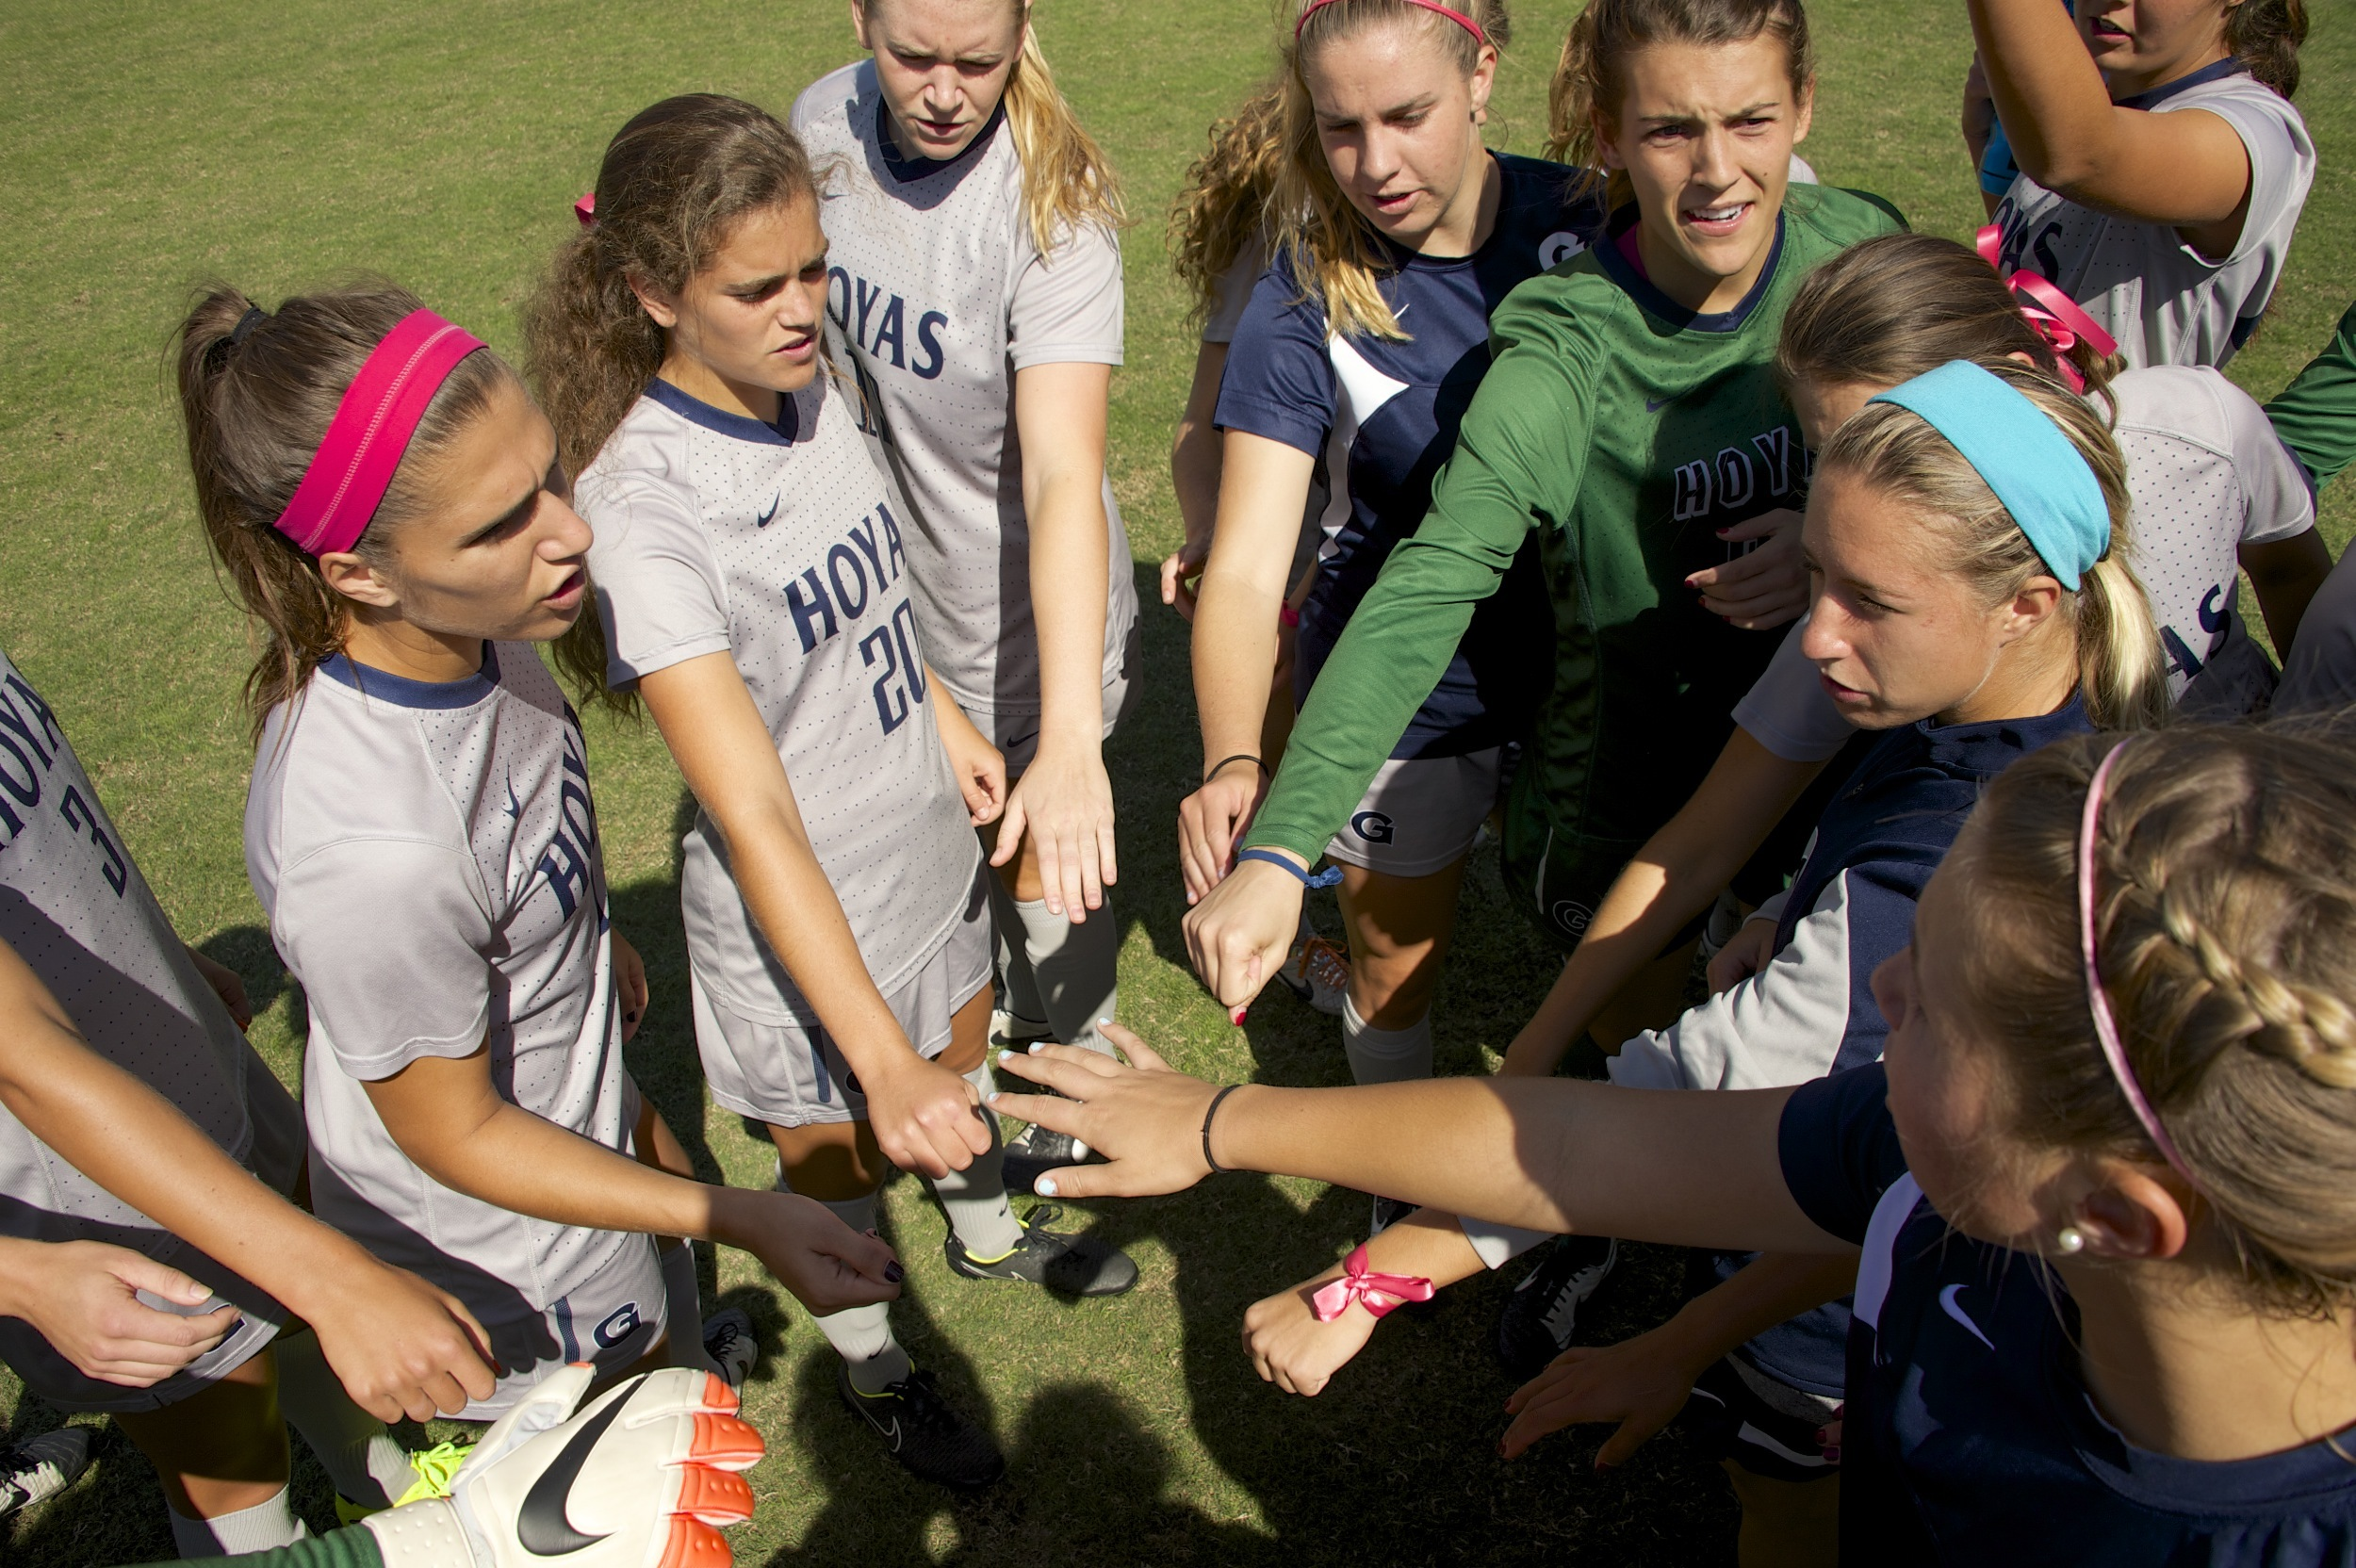 Georgetown University Head Women's Soccer Coach Dave Nolan announced the addition of Lyndse Hokanson to the coaching staff. Hokanson joins the Hoyas after spending the 2014 season as the graduate assistant coach at Valdosta State University.